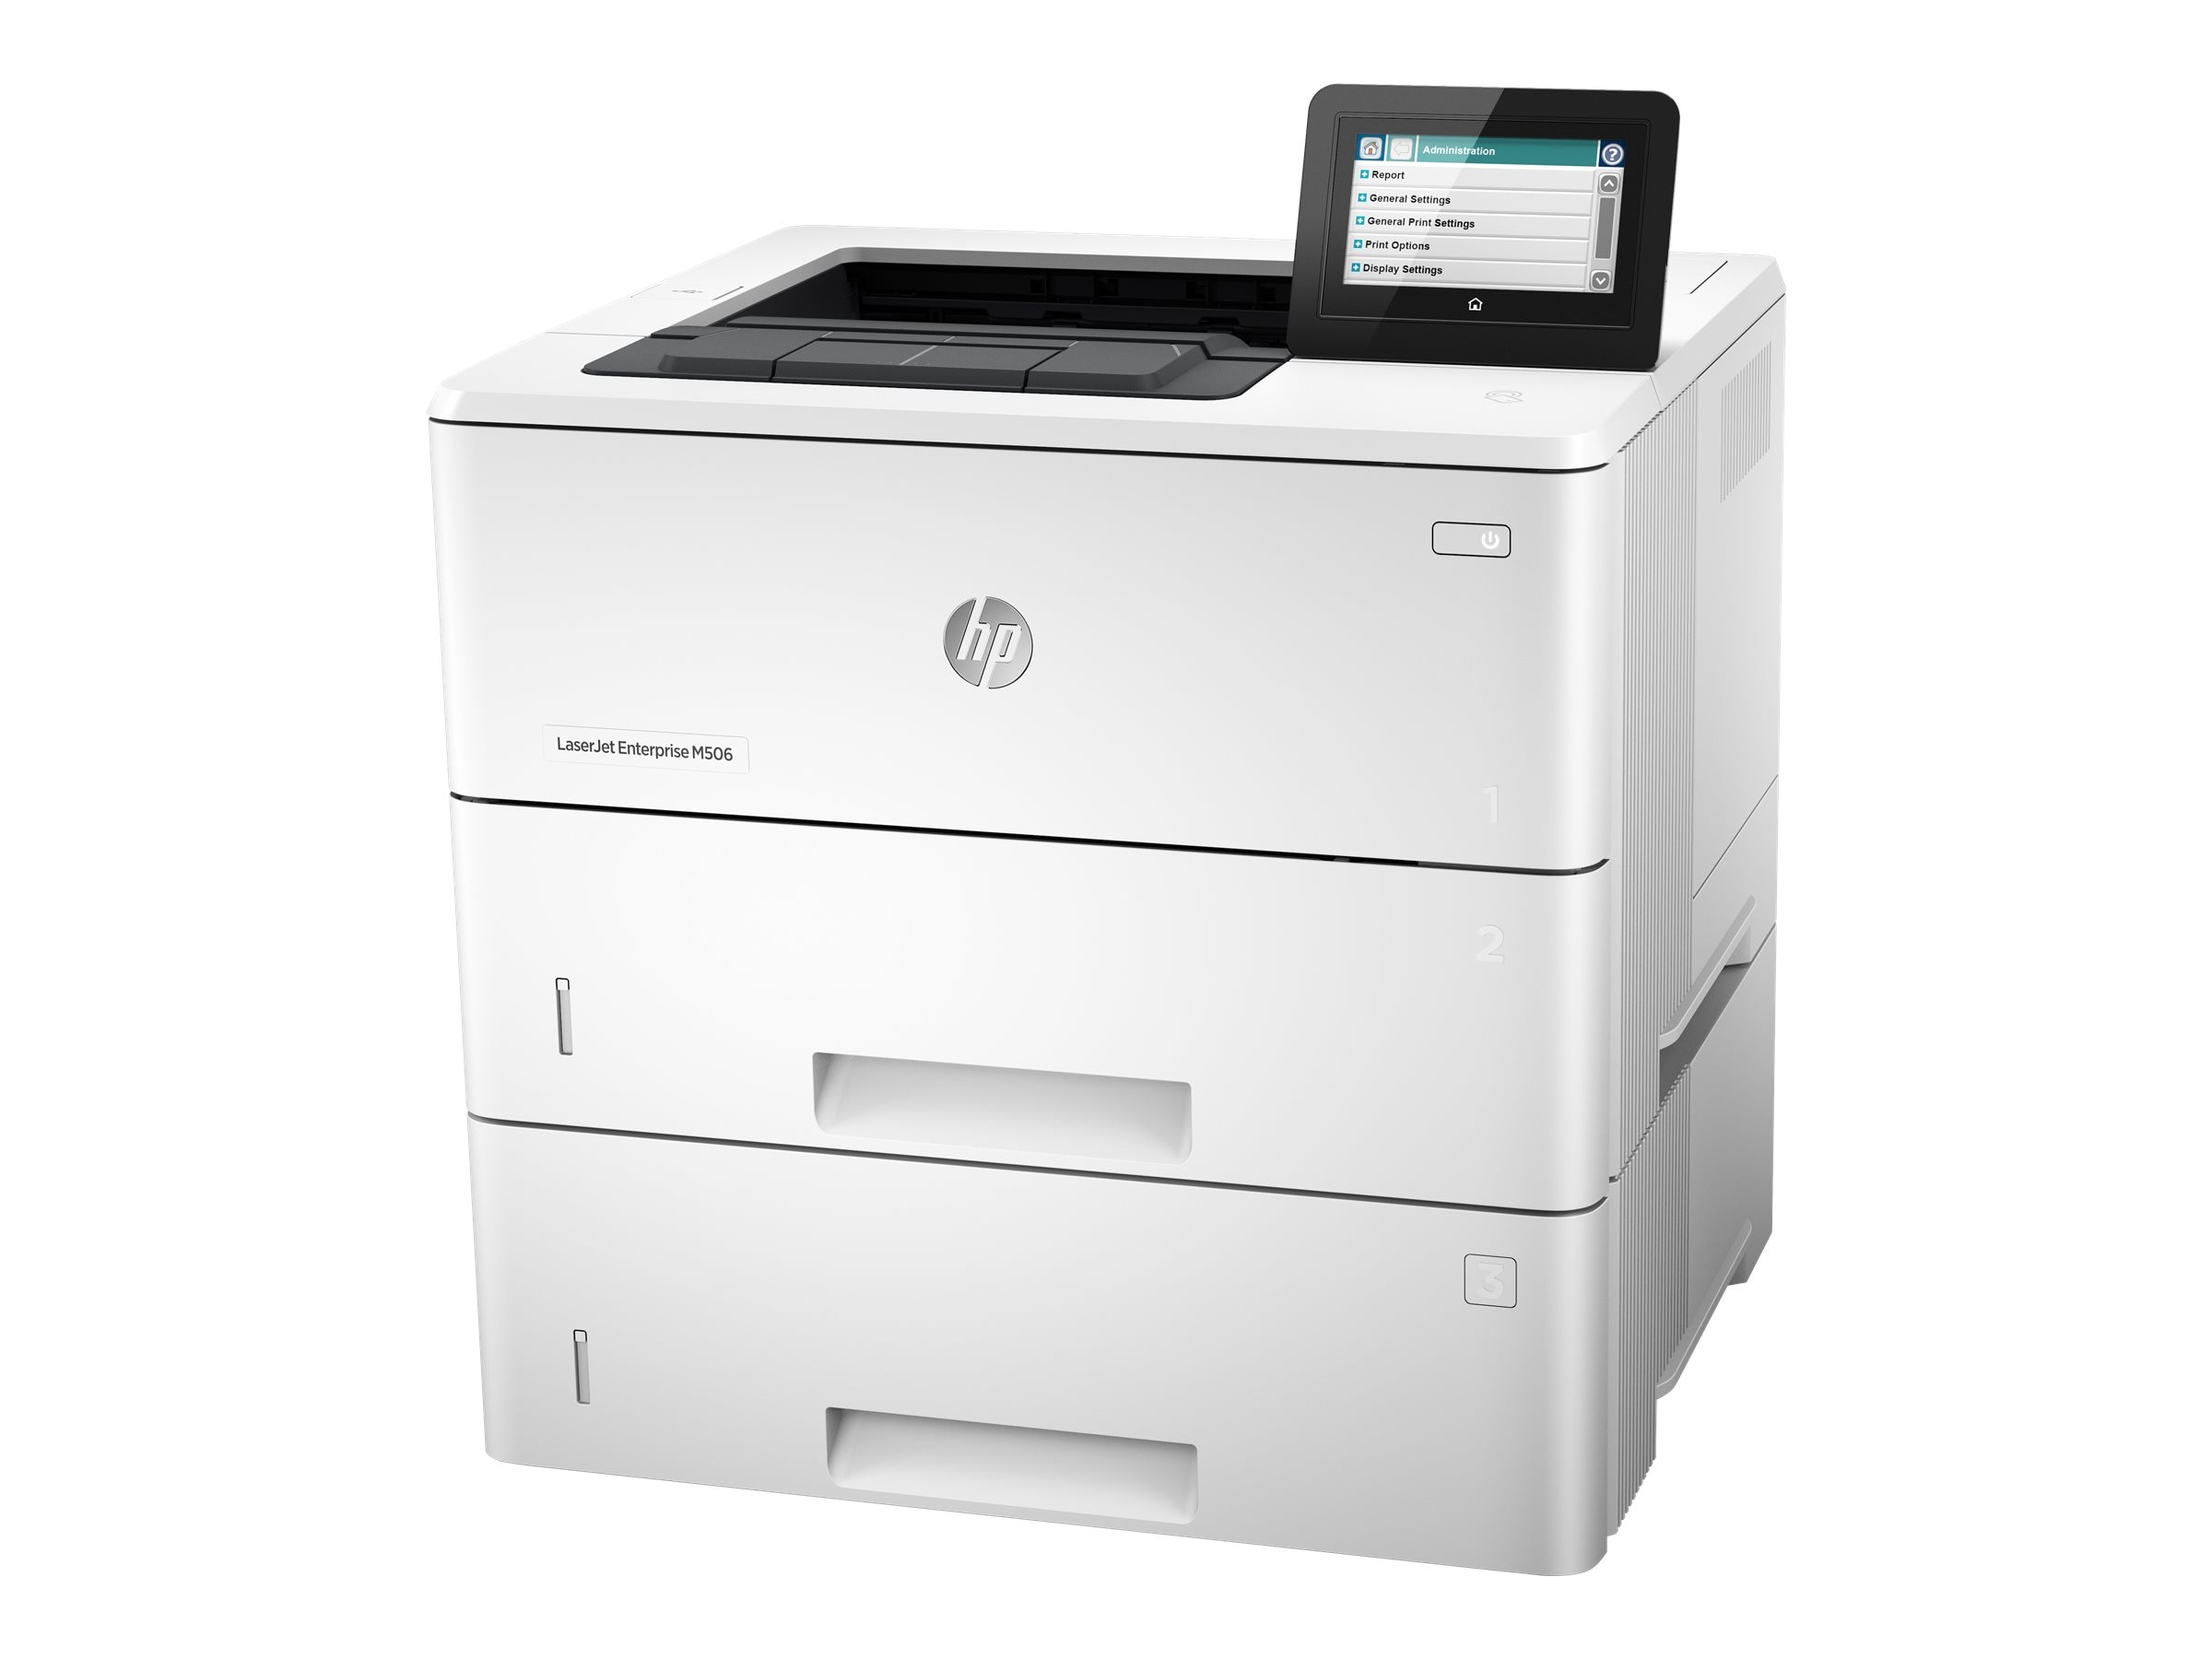 HP LaserJet Enterprise M506x Printer, F2A70A#BGJ, 30006420, Printers - Laser & LED (monochrome)